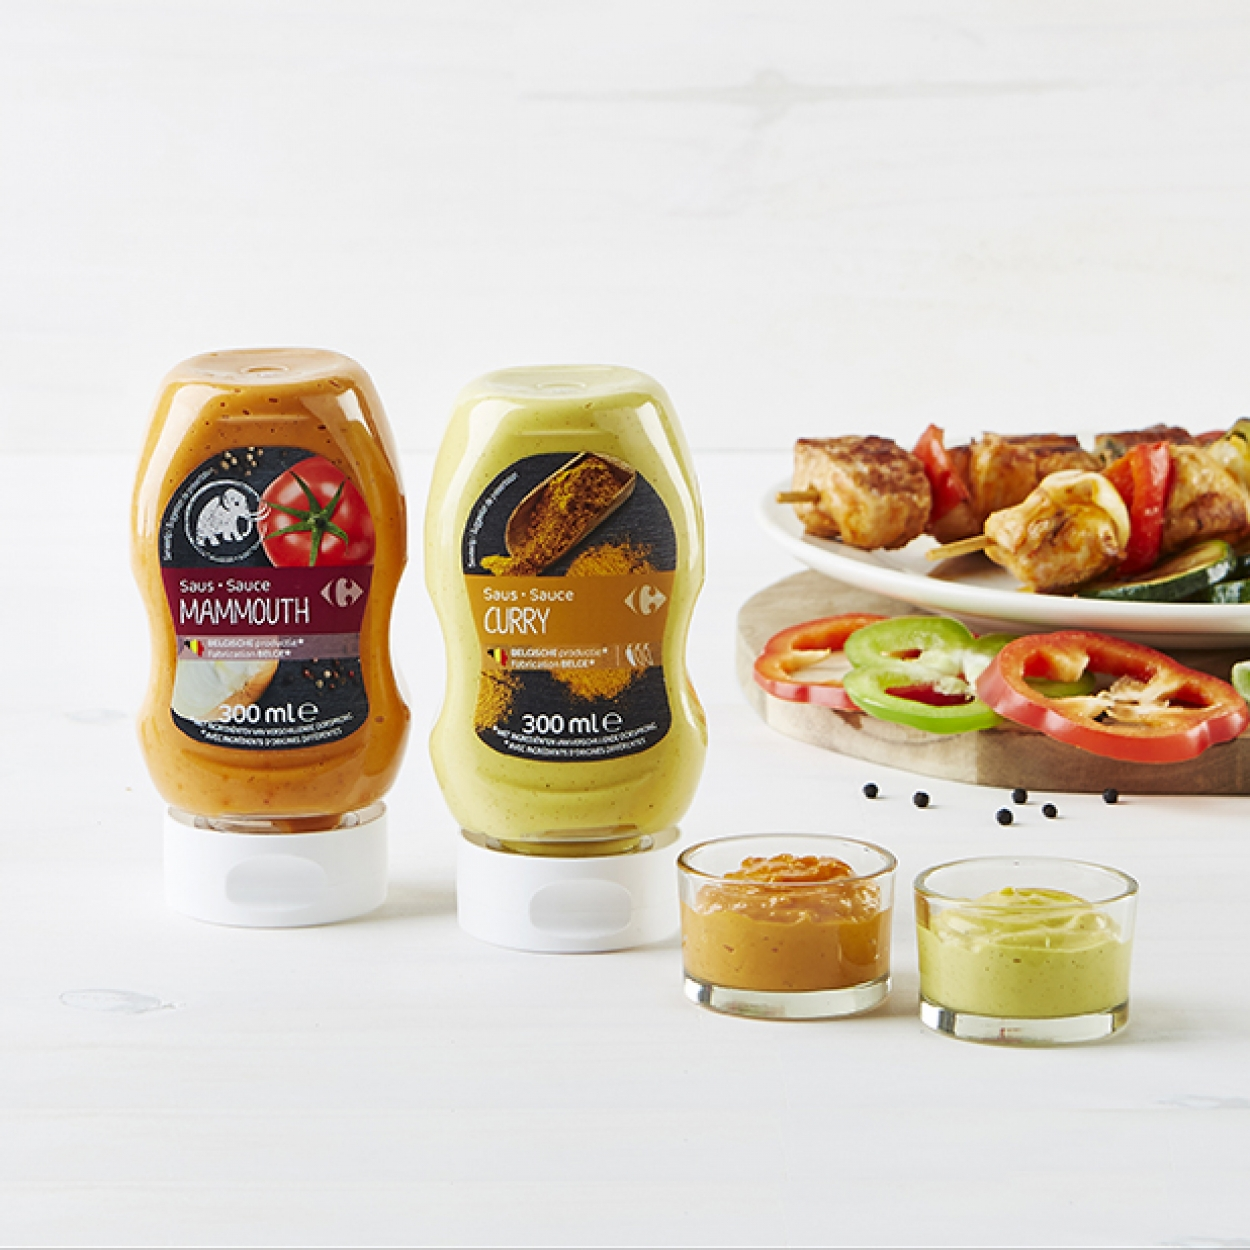 Sauces Mammouth et Curry Carrefour